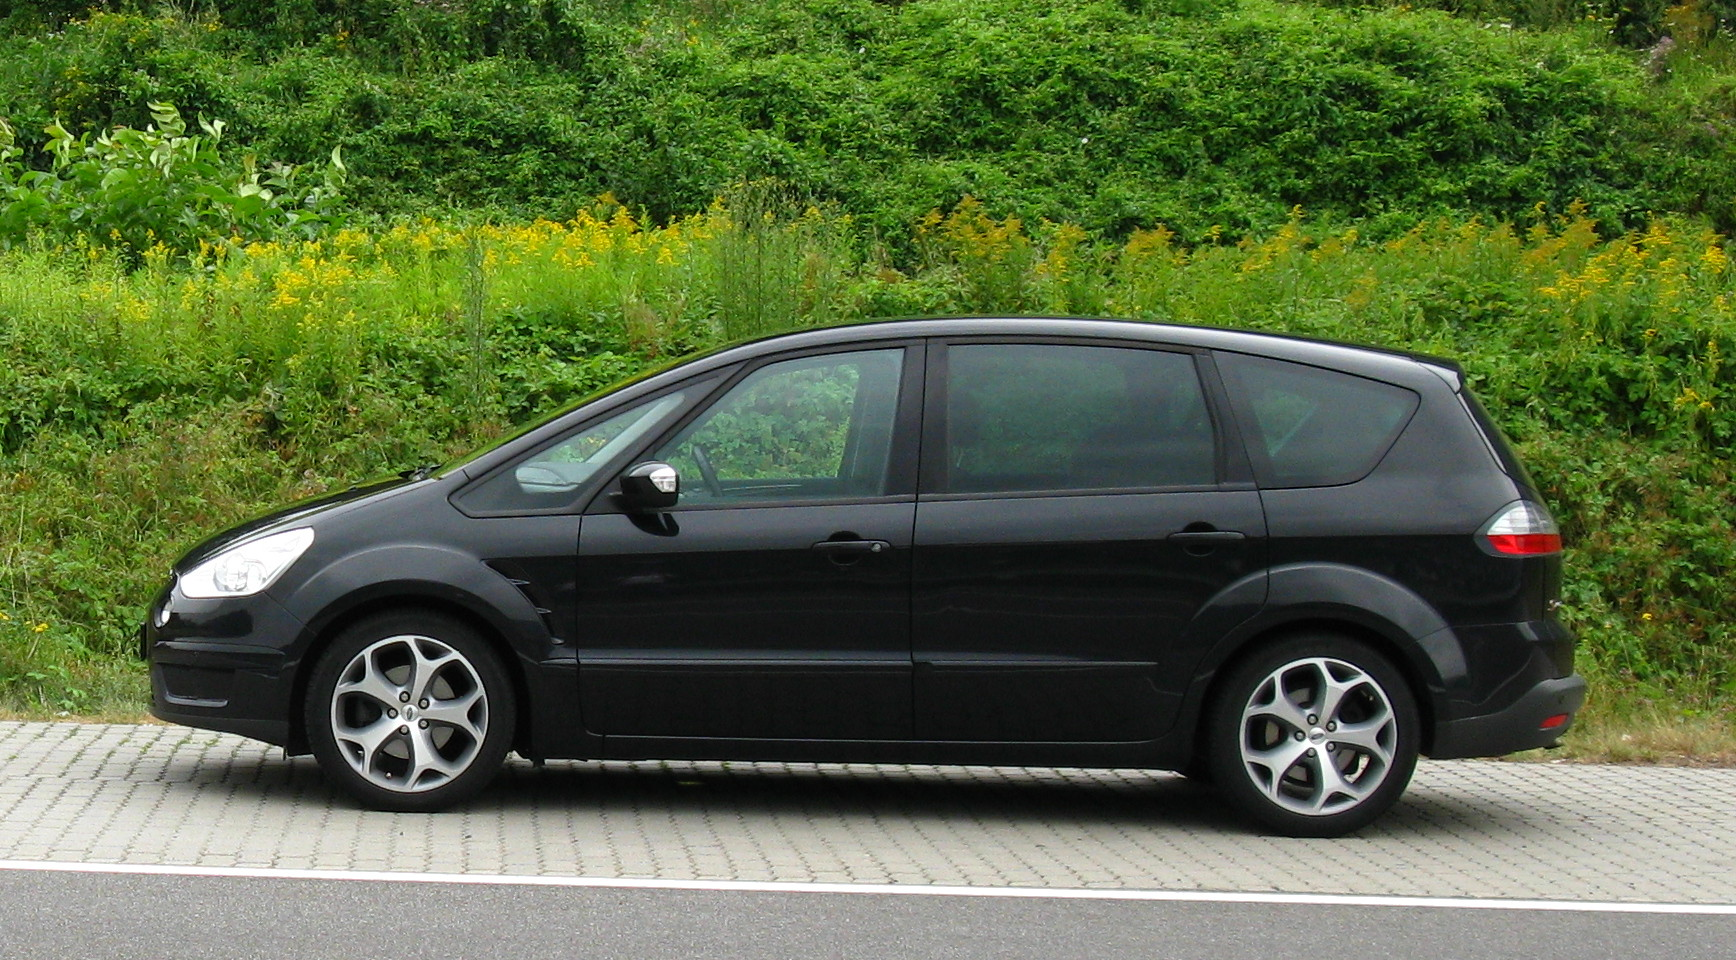 Ford S-Max 2.2 2007 photo - 9